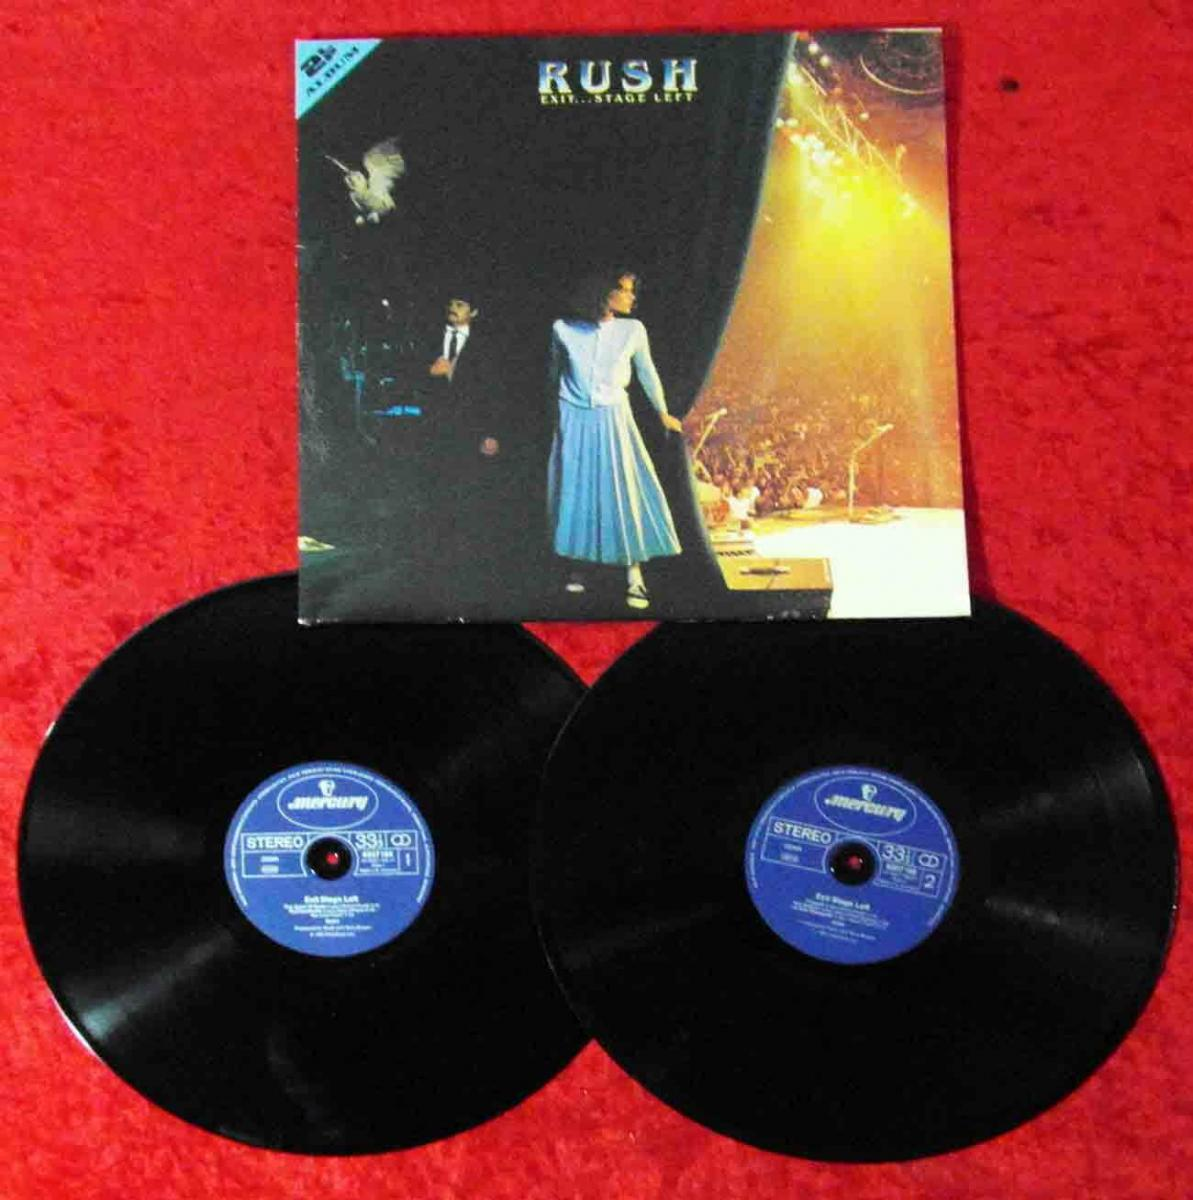 2LP Rush: Exit...Stage Left (Mercury 6619 053) D